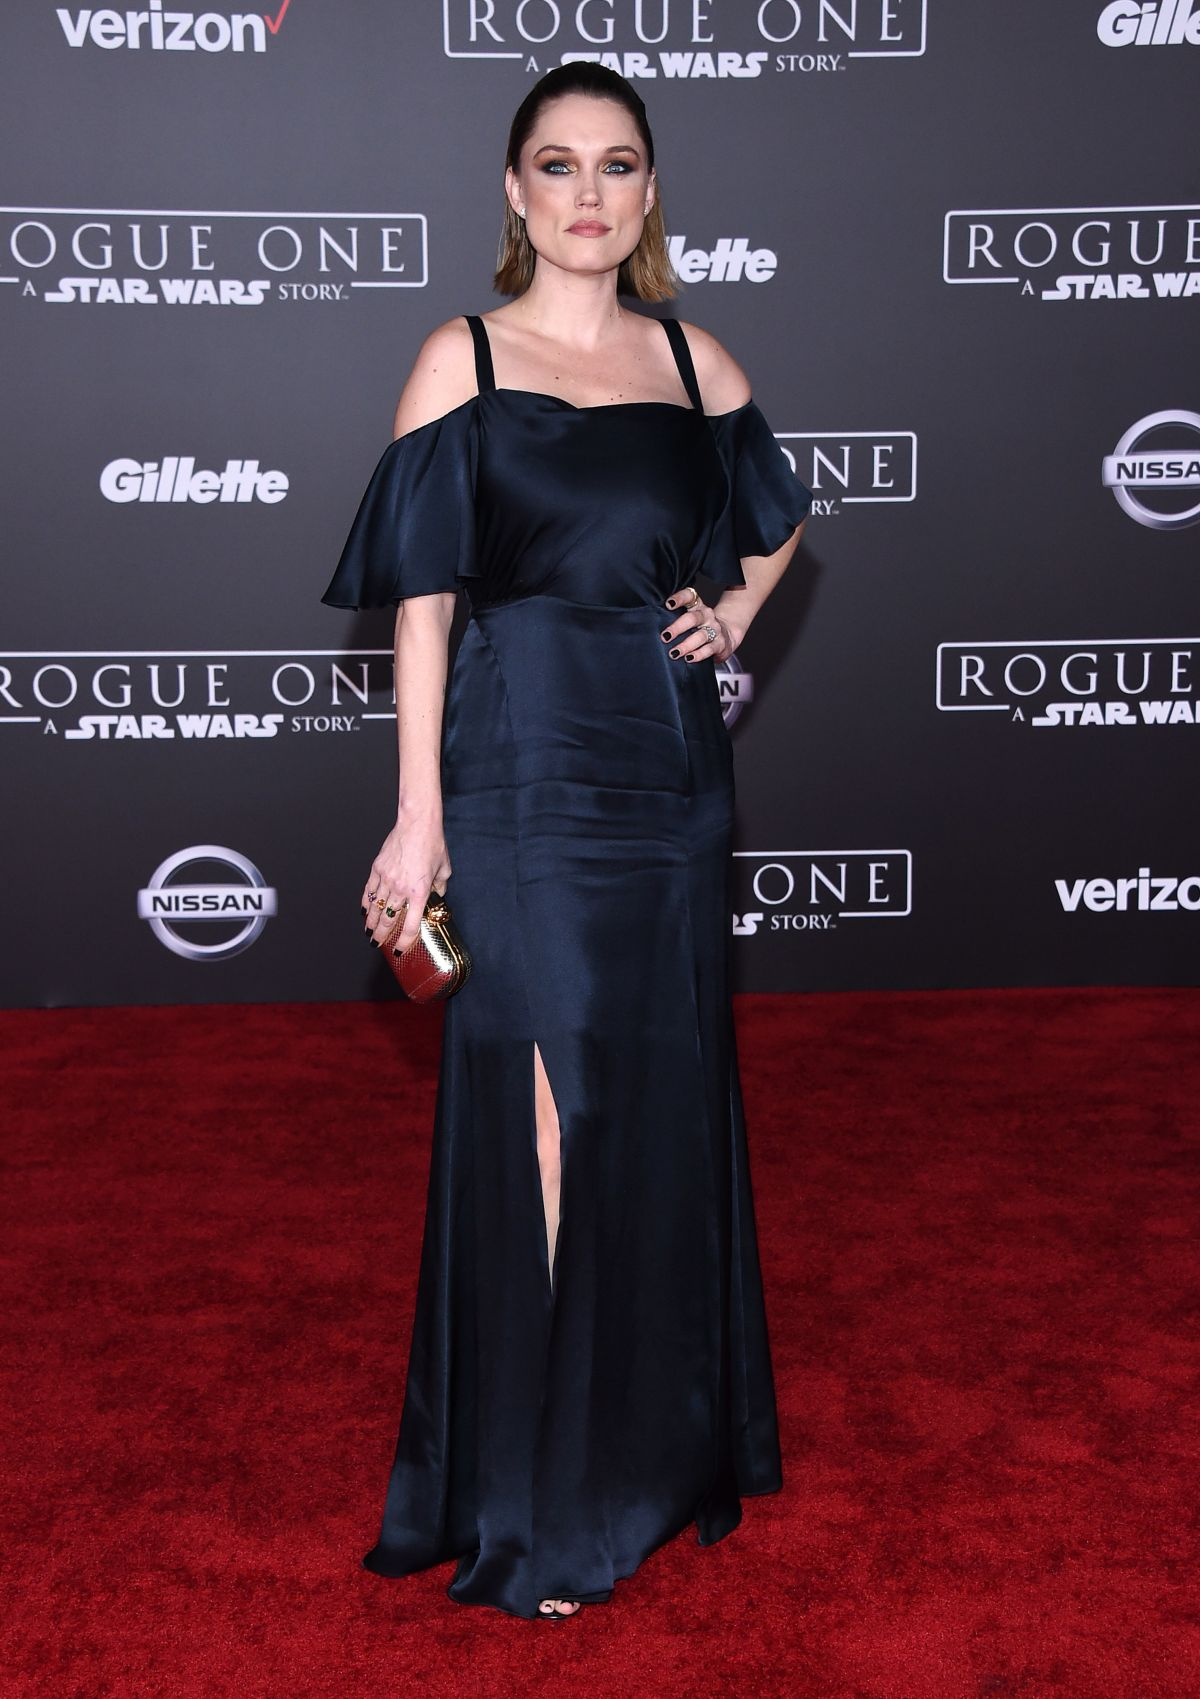 CLARE GRANT at Rogue One: A Star Wars Story Premiere in Hollywood 12/10/2016